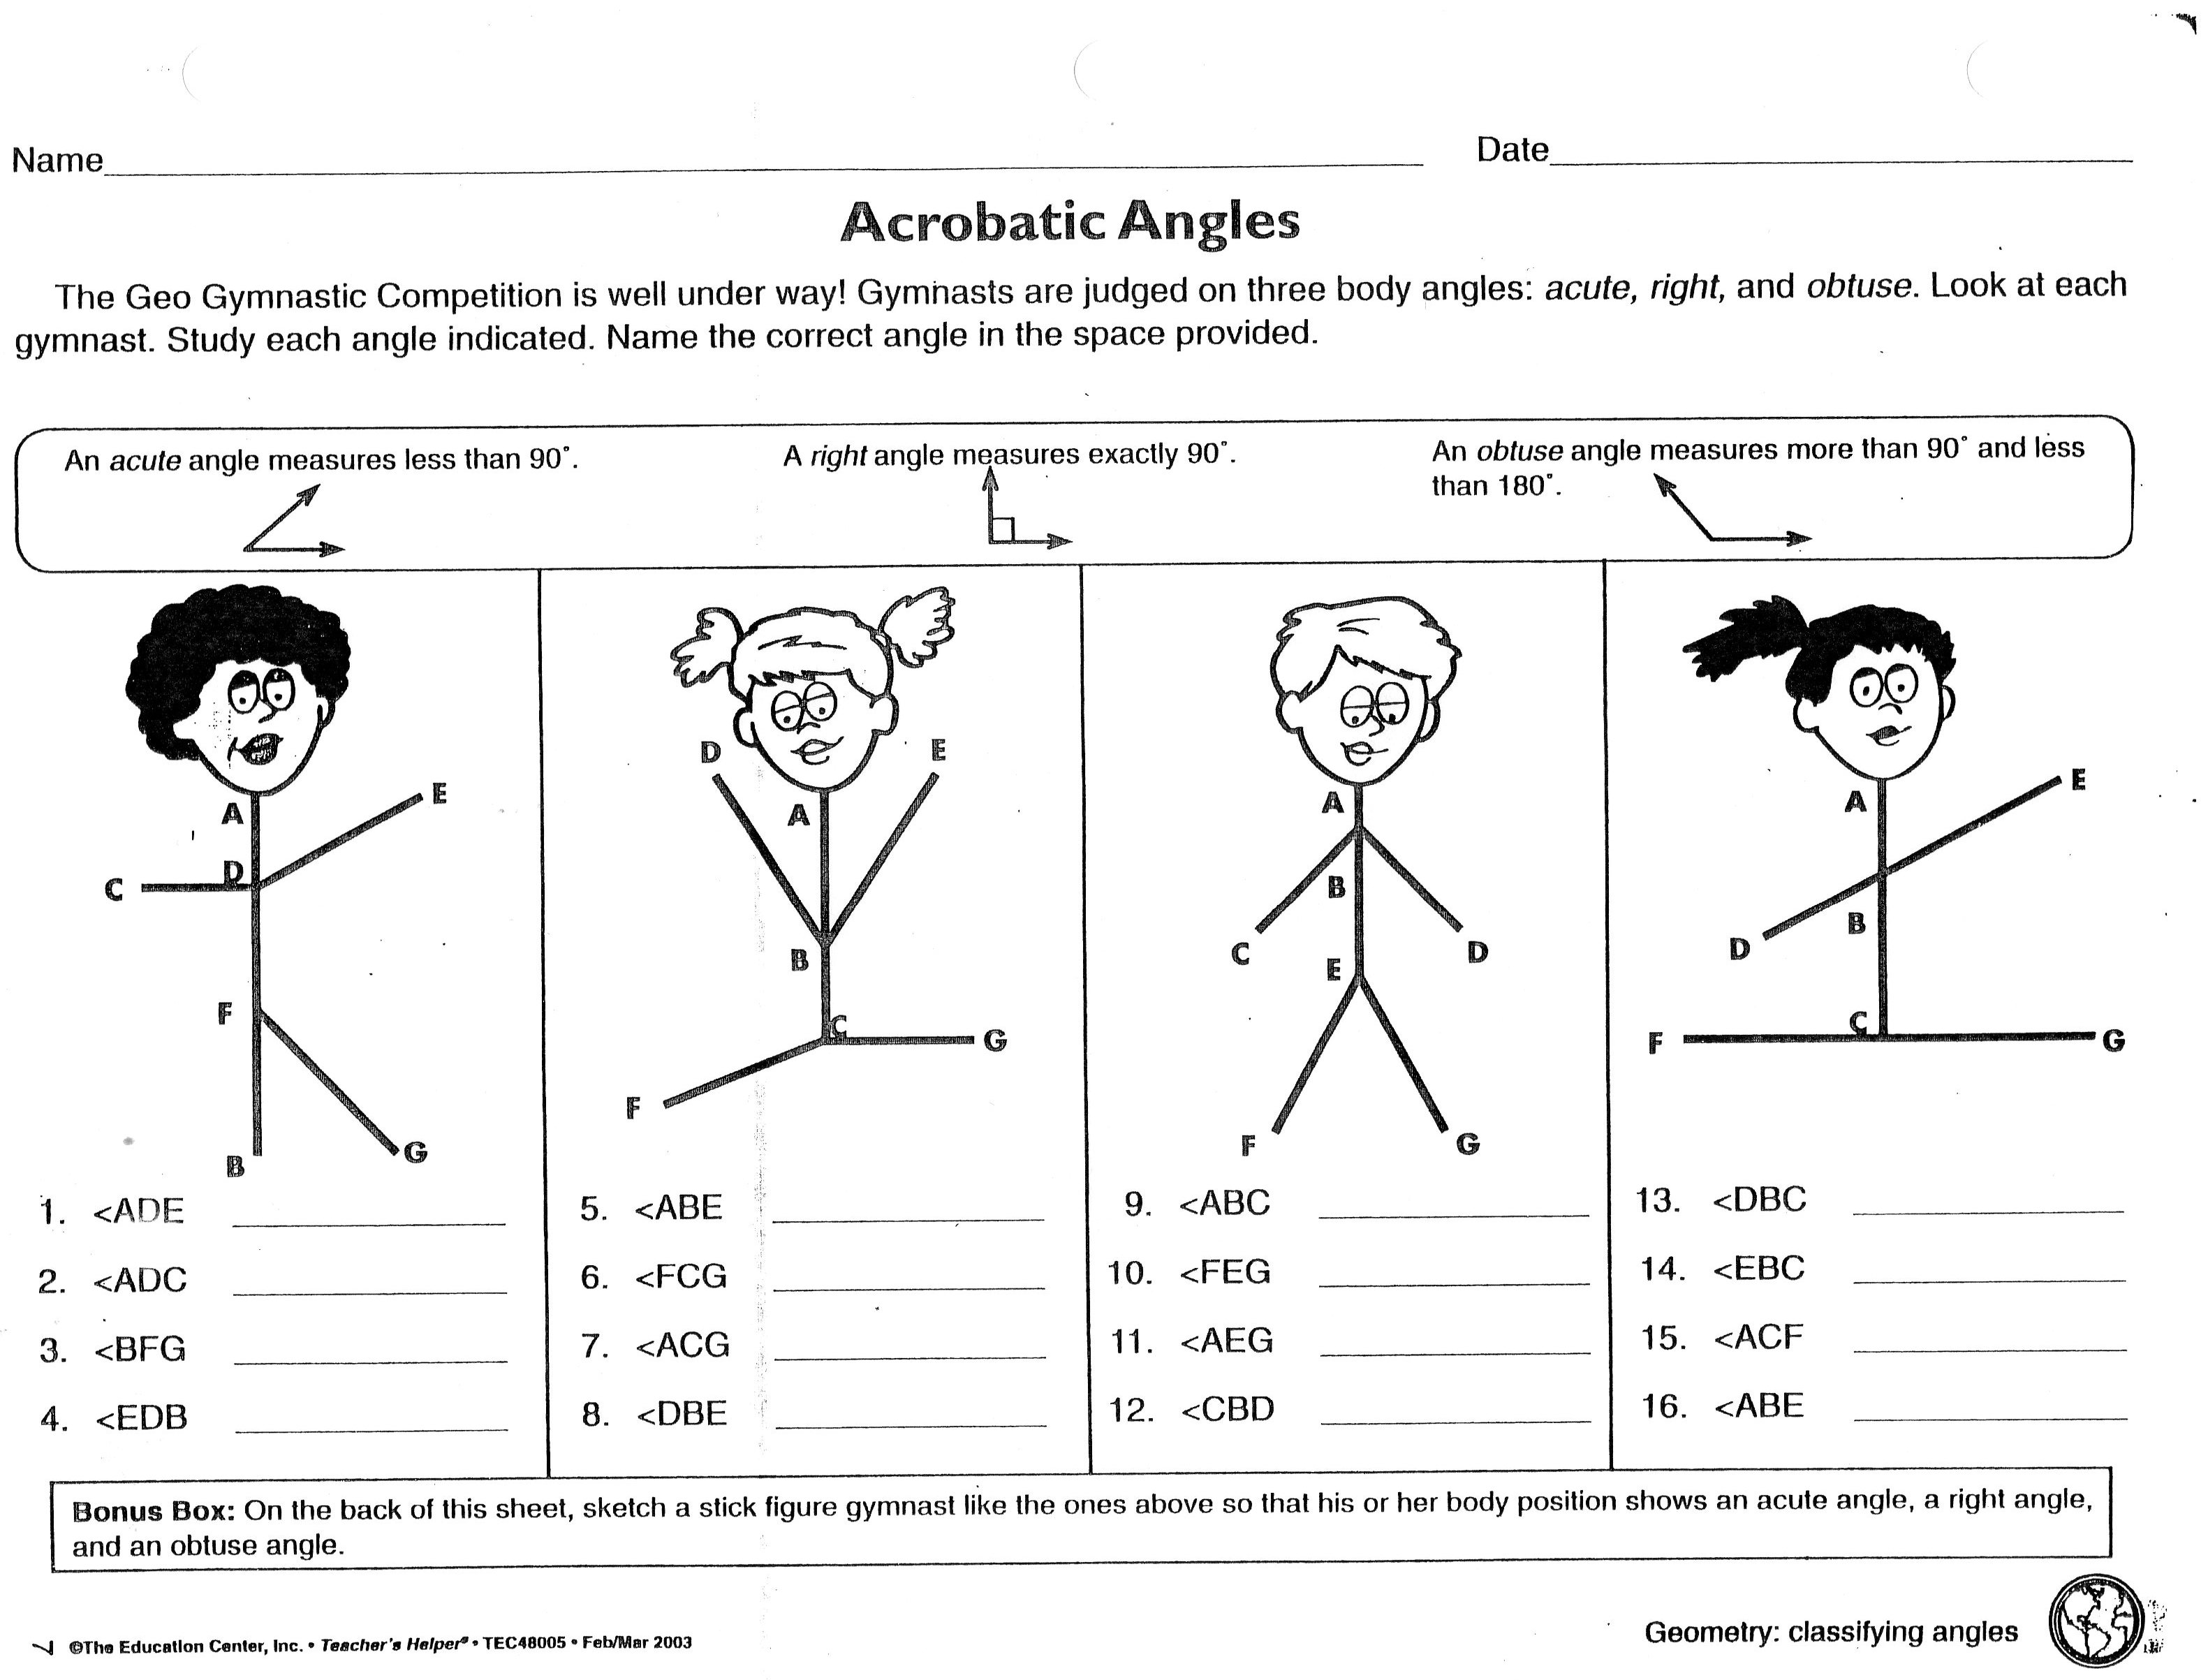 Acrobatic Angles Worksheet Obtuse Acute Right Michael Jordan Was Cut From His High School